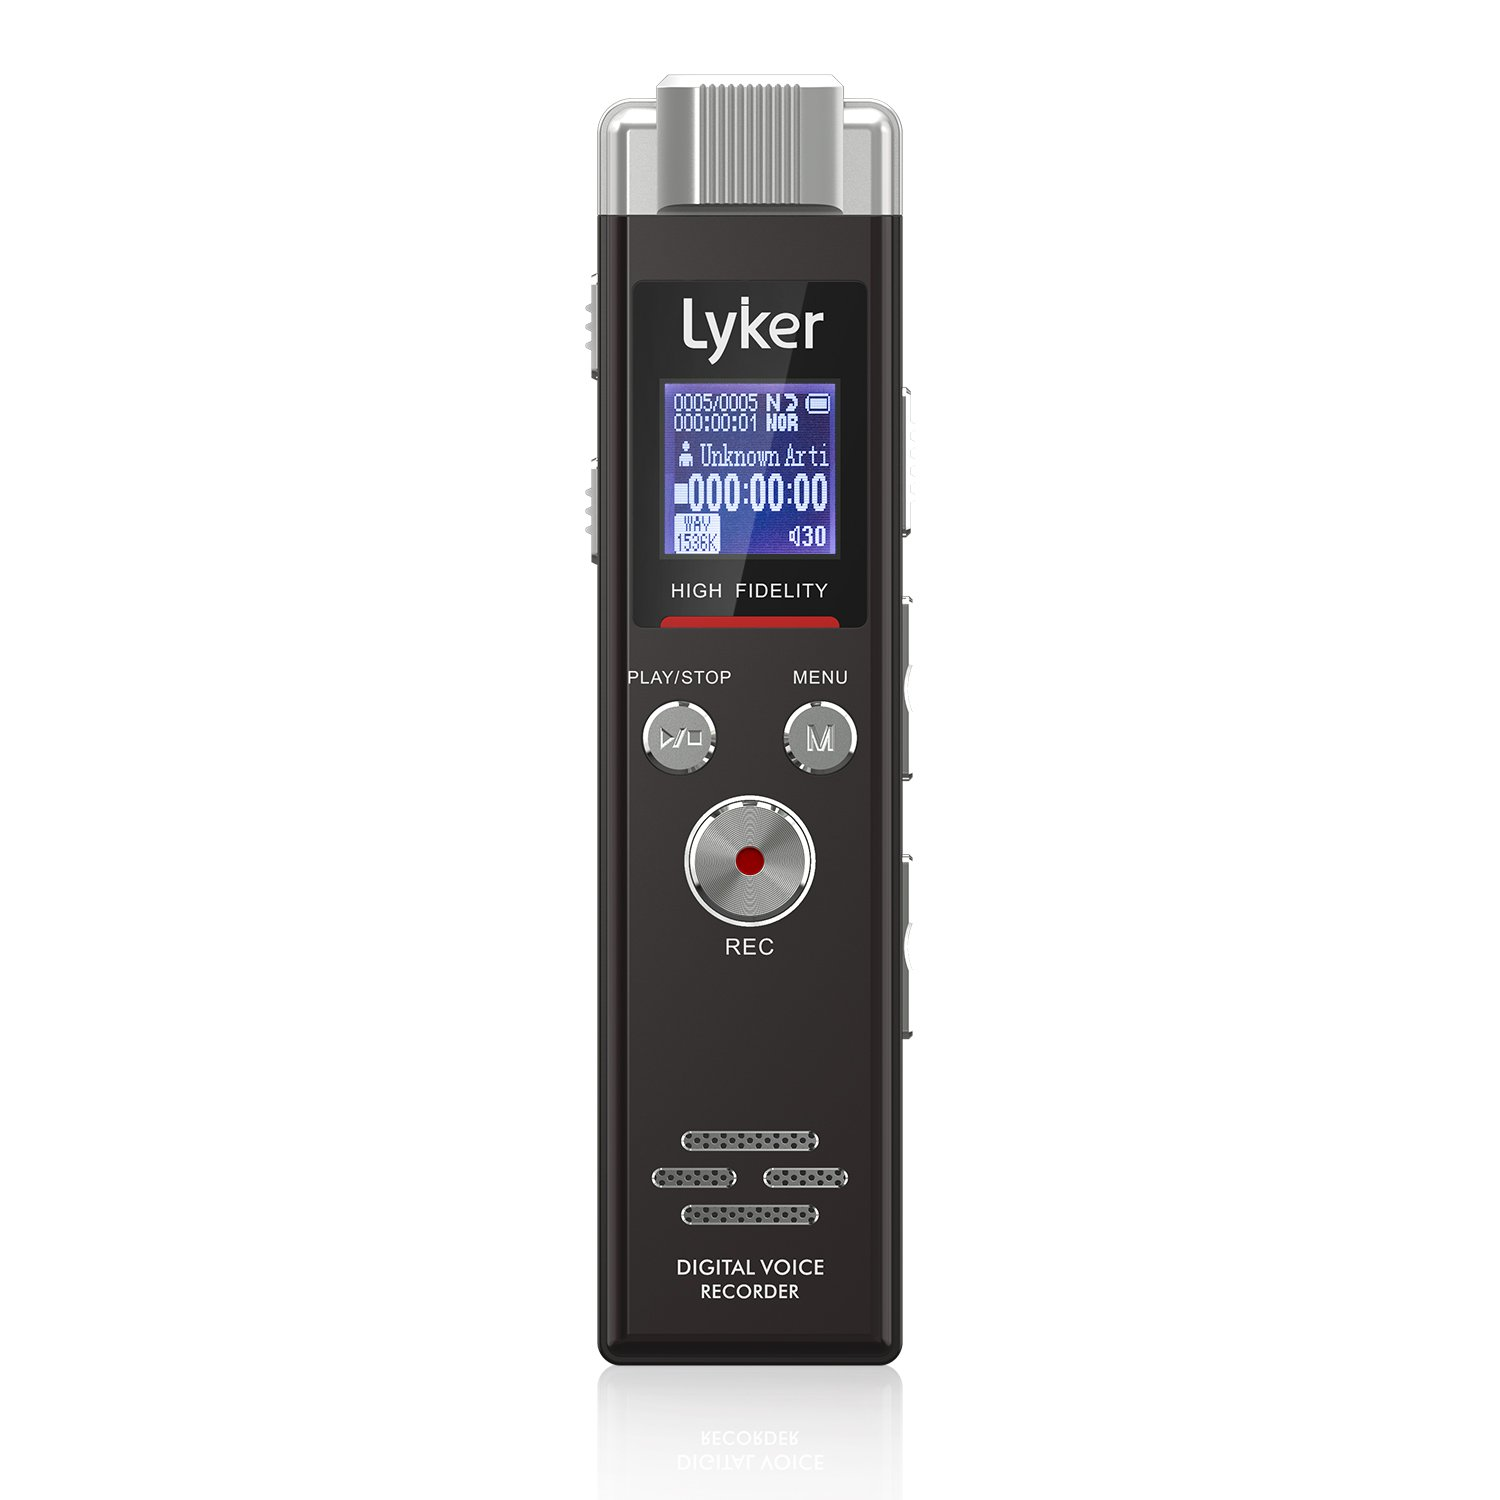 Lyker 4330997192 Digital Voice Recorder, 8 GB Audio Recorder for Lectures Voice Activated Sound Dictaphone 5 AVR Levels High Fidelity PCM Dual Microphone, 48Khz Sampling, Subsection and Time Mark